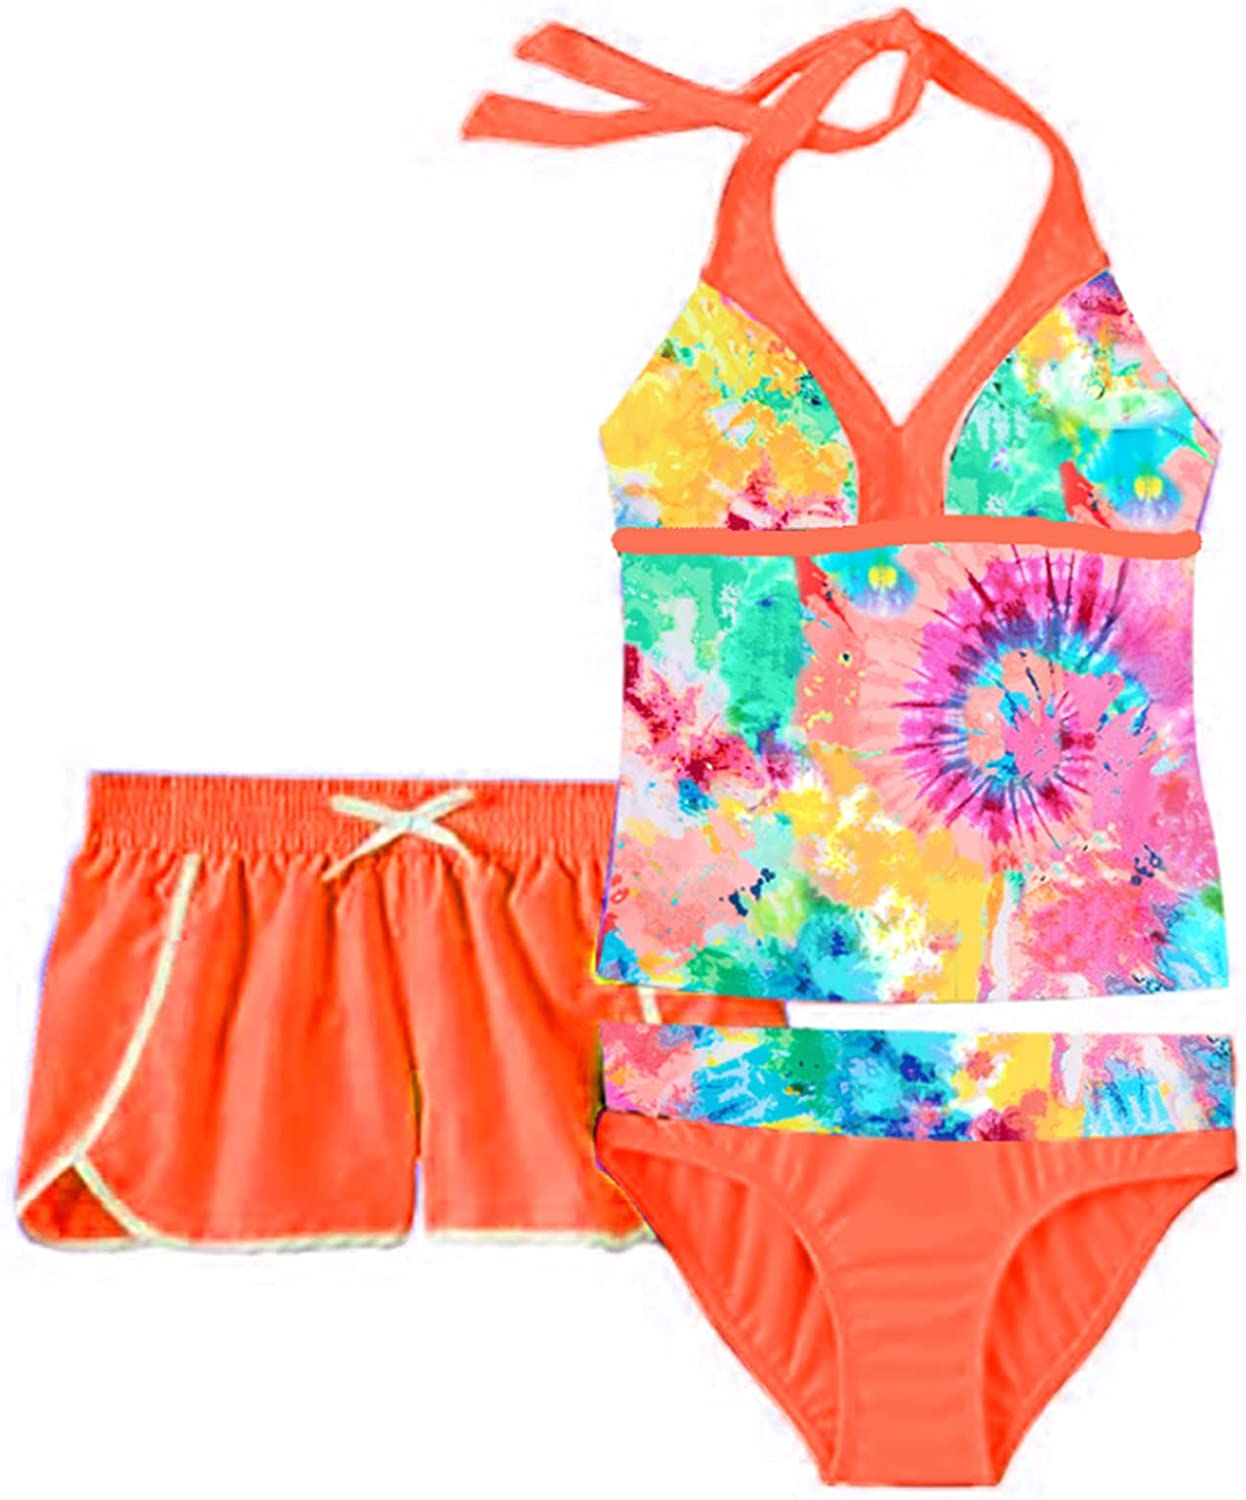 Choomomo Kids Girls 3 Pieces Tankini Tops Portland Mall Halter Crop Swimsuits Safety and trust